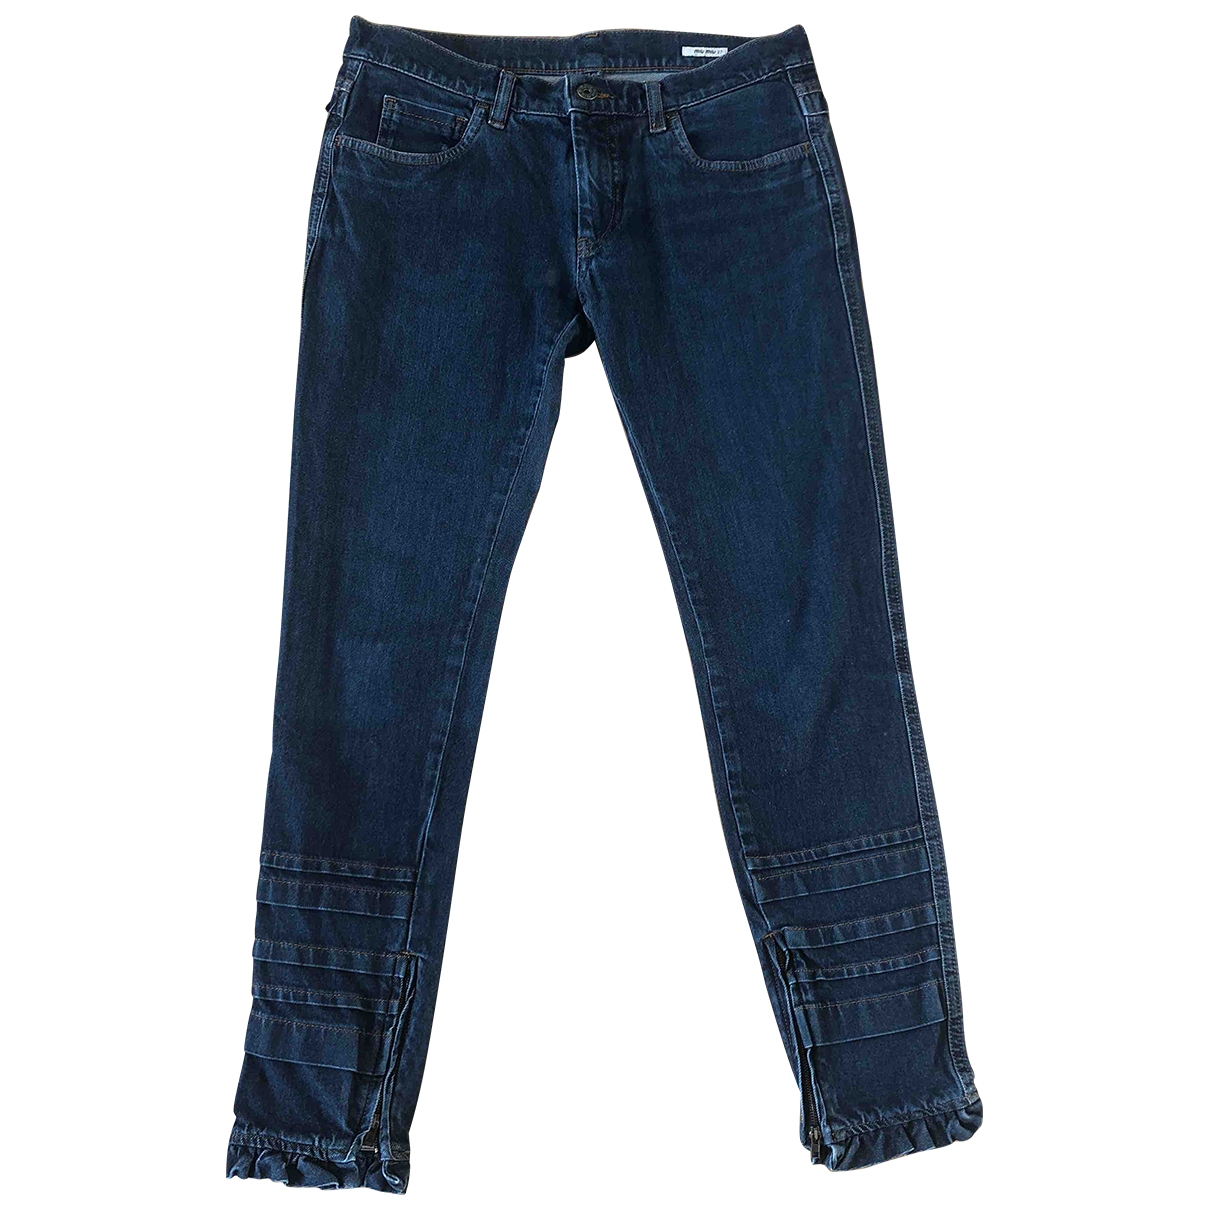 Miu Miu \N Blue Denim - Jeans Trousers for Women 36 FR